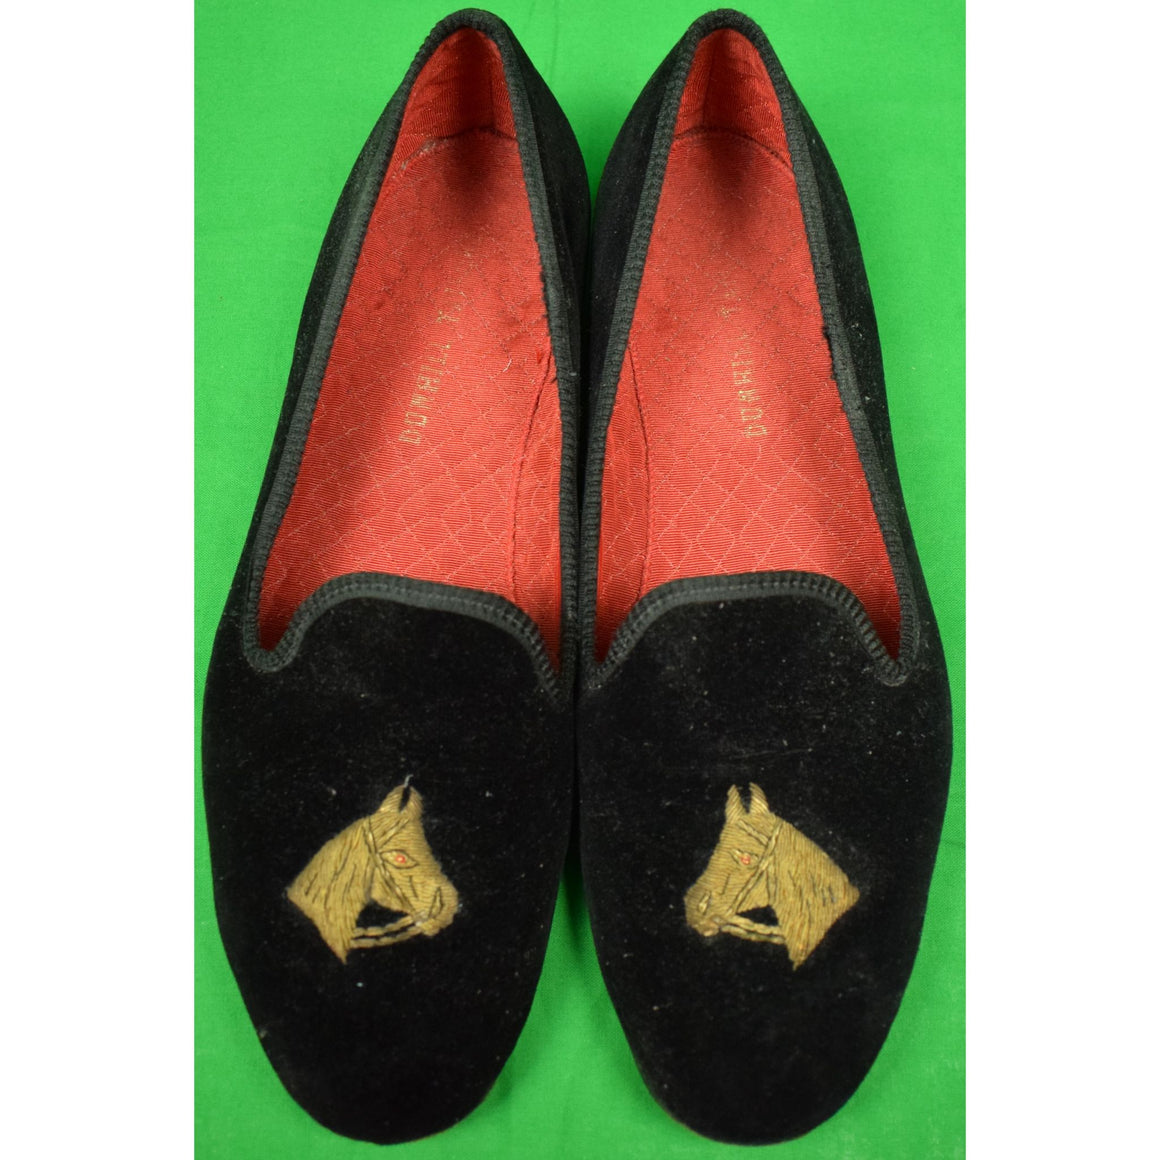 Dunhill Tailors Black Velvet English Slippers w/ Gilt Horse Head Bullion Embroidery Sz: 10D